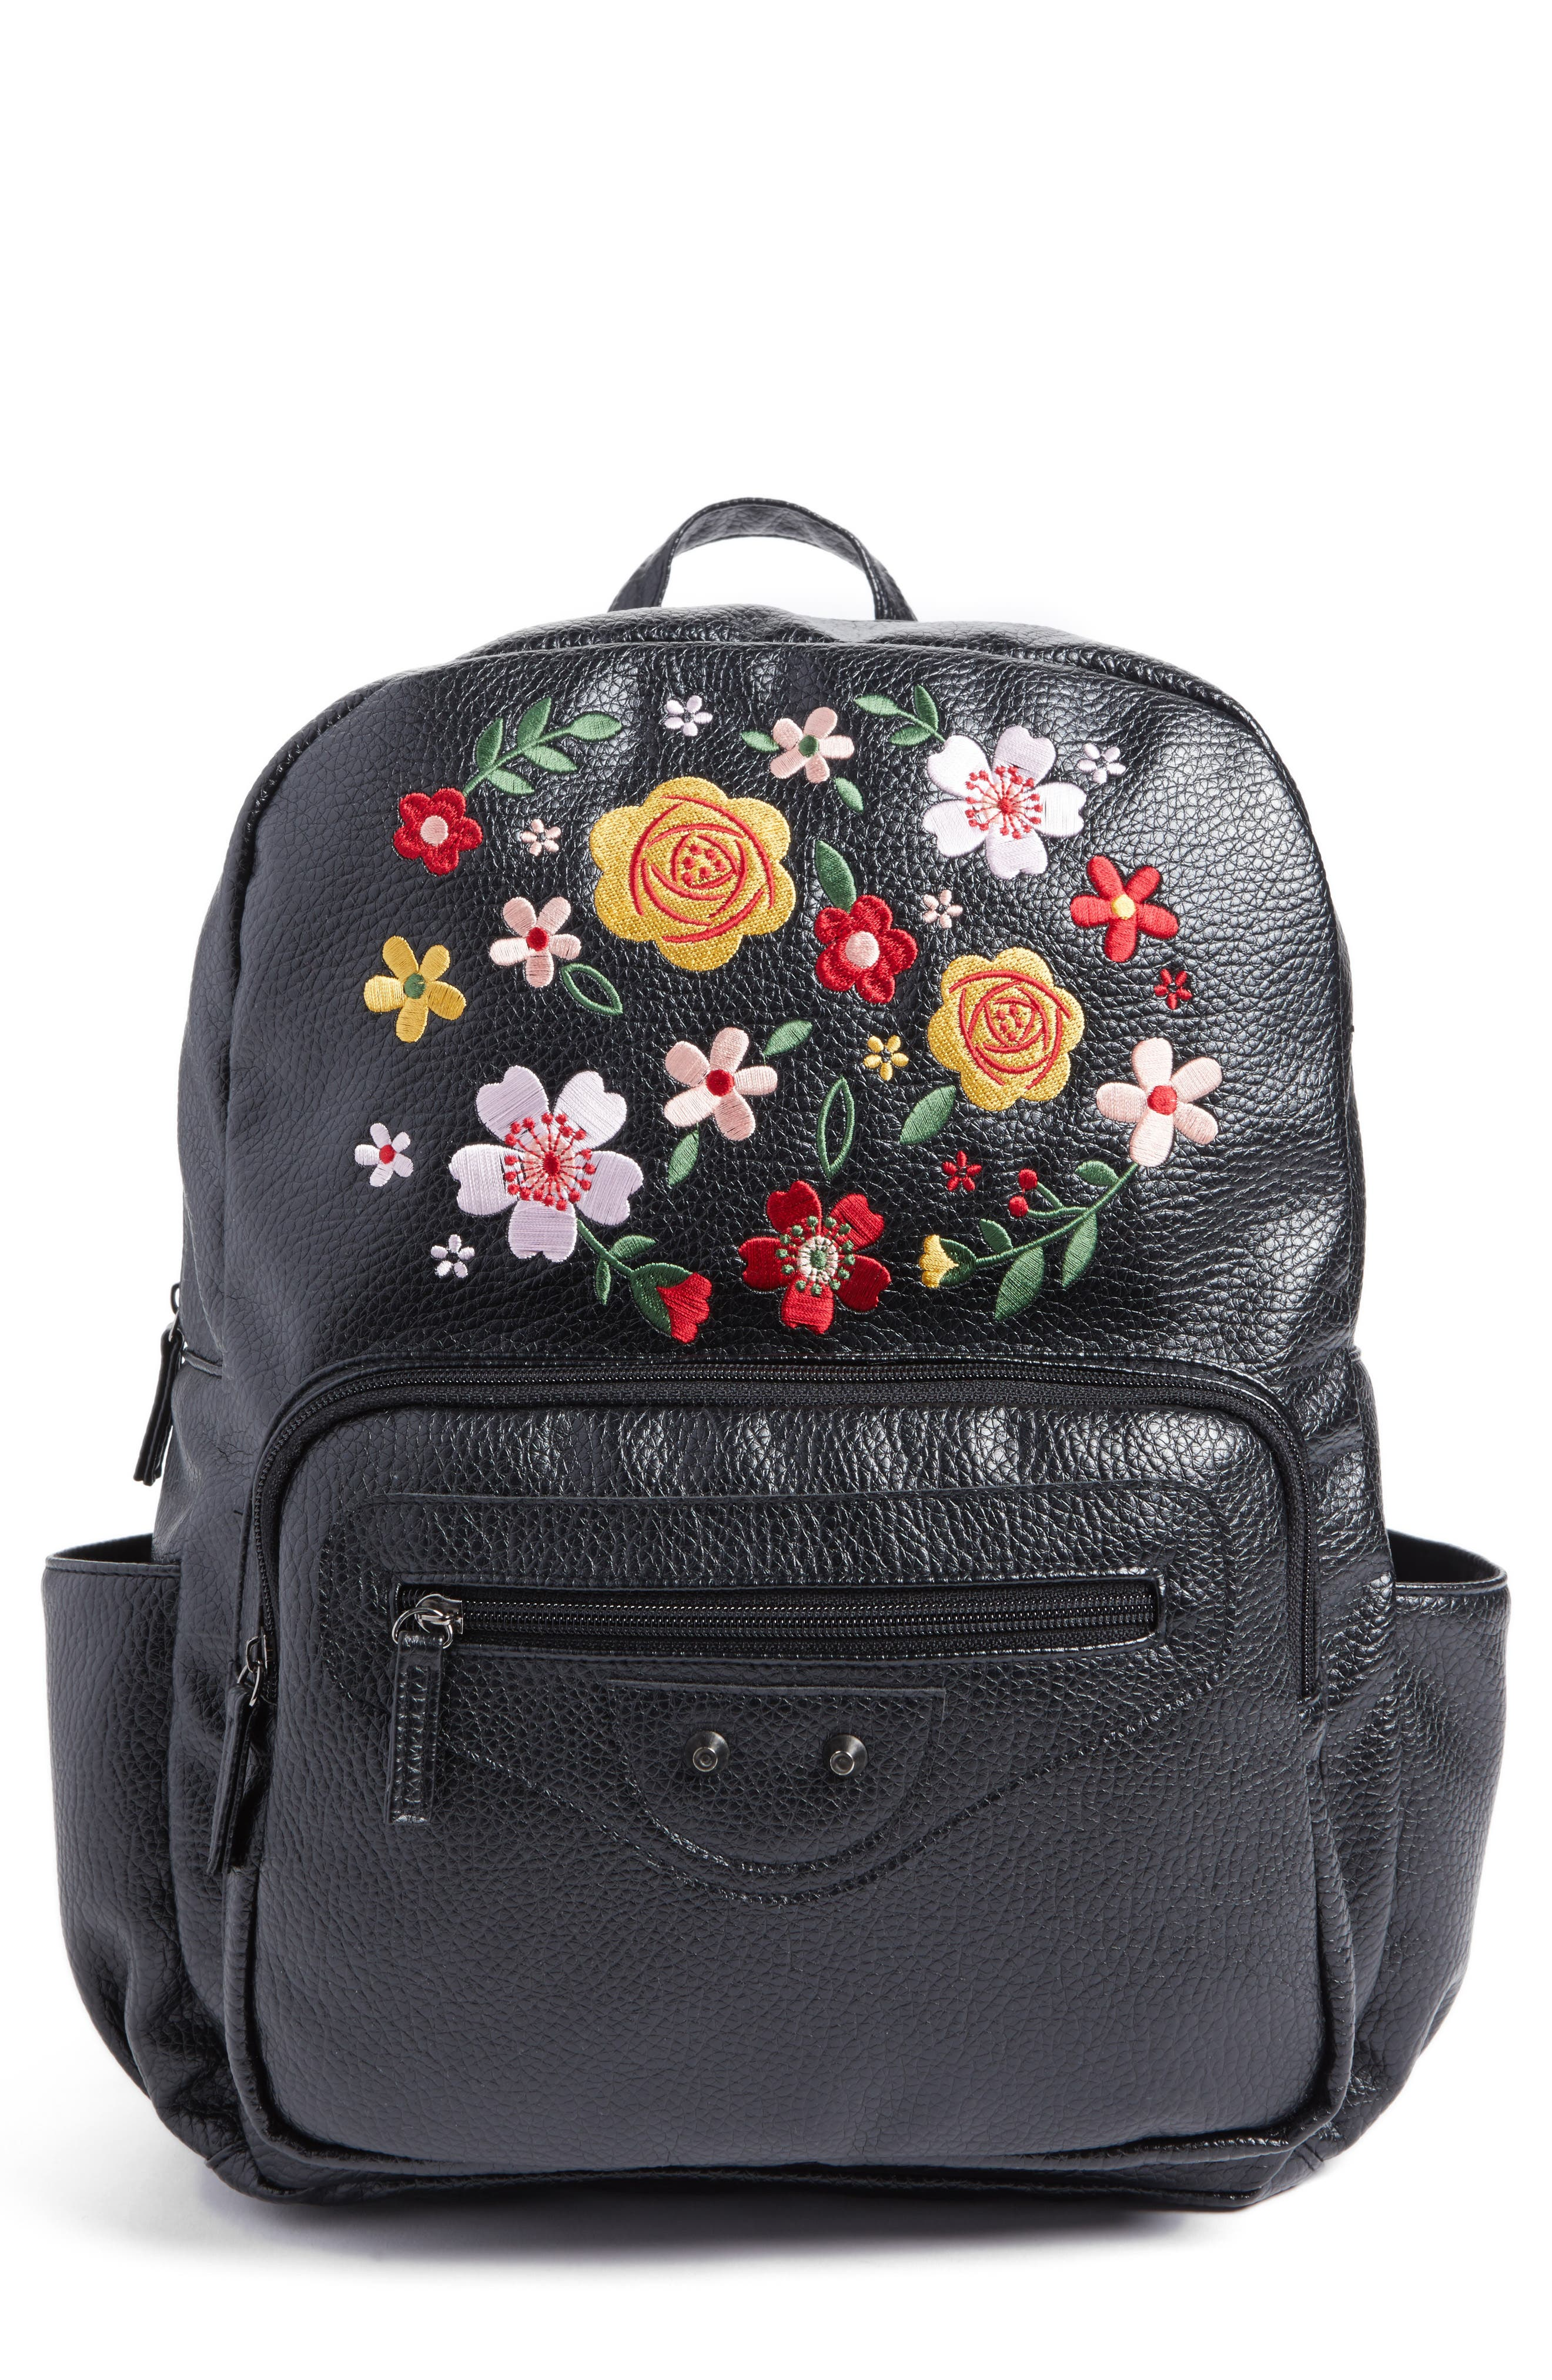 Embroidered Backpack,                         Main,                         color, Black